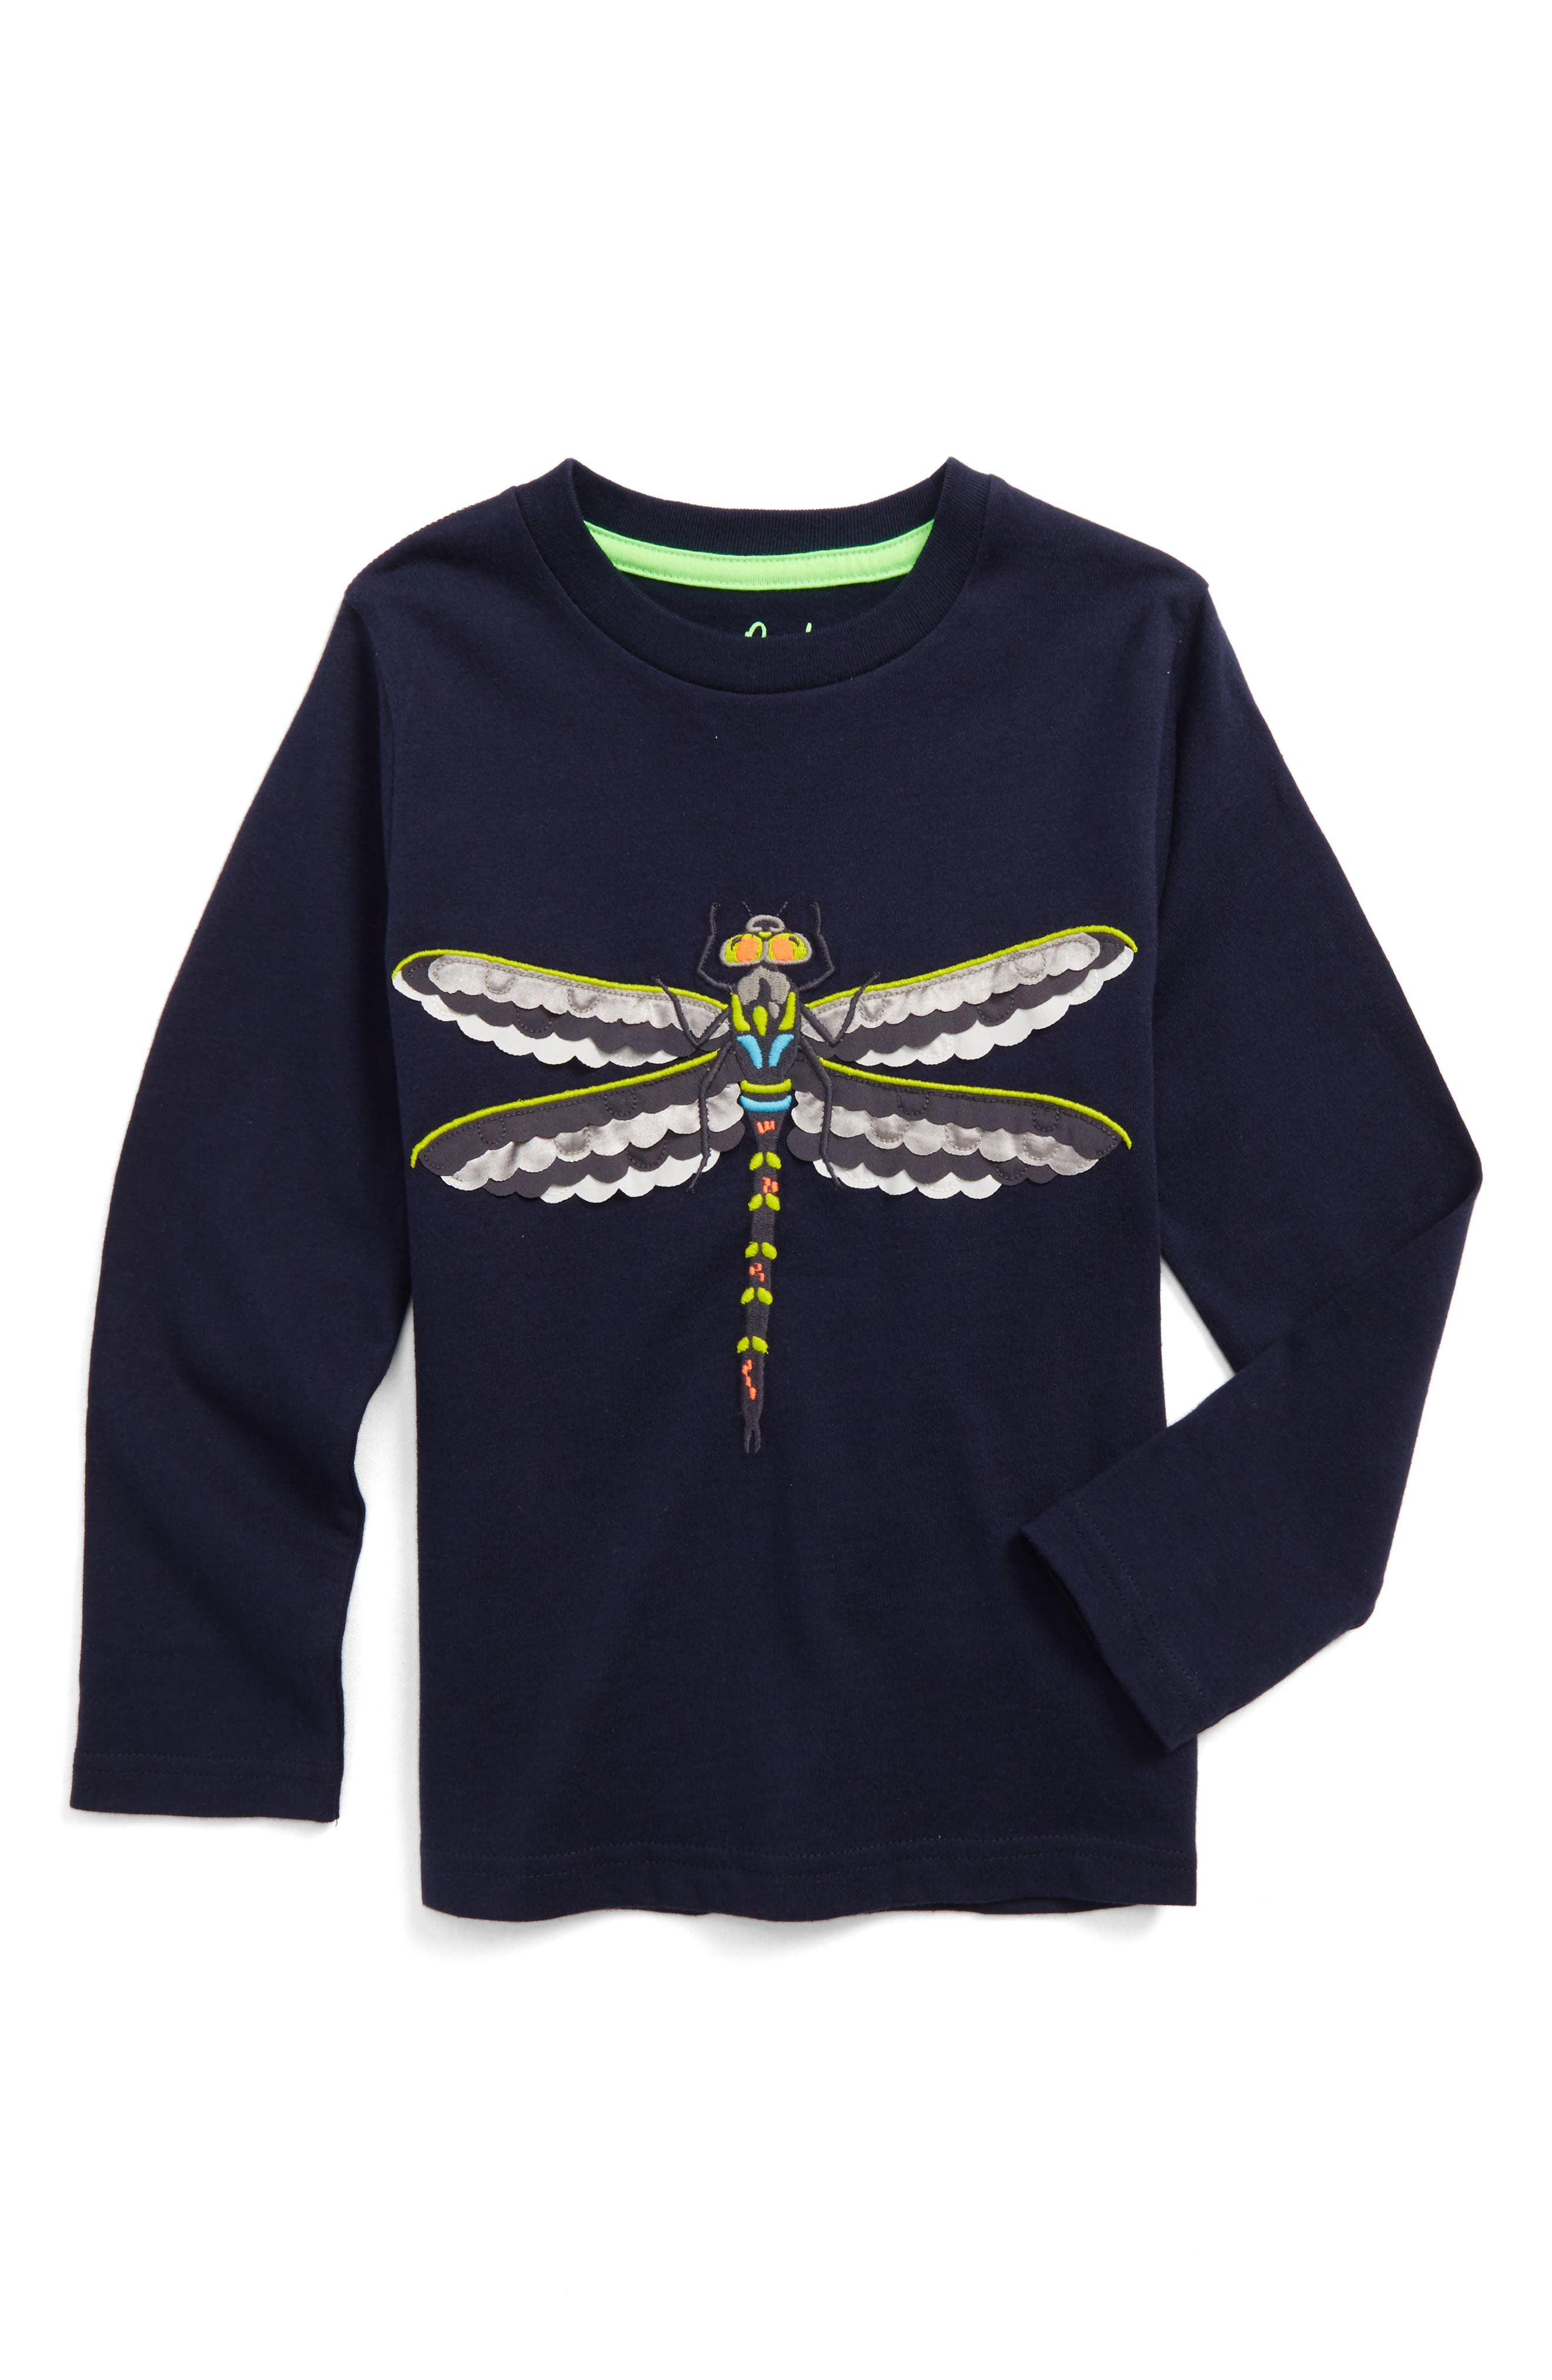 Alternate Image 1 Selected - Mini Boden Textured Creature T-Shirt (Toddler Boys, Little Boys & Big Boys)